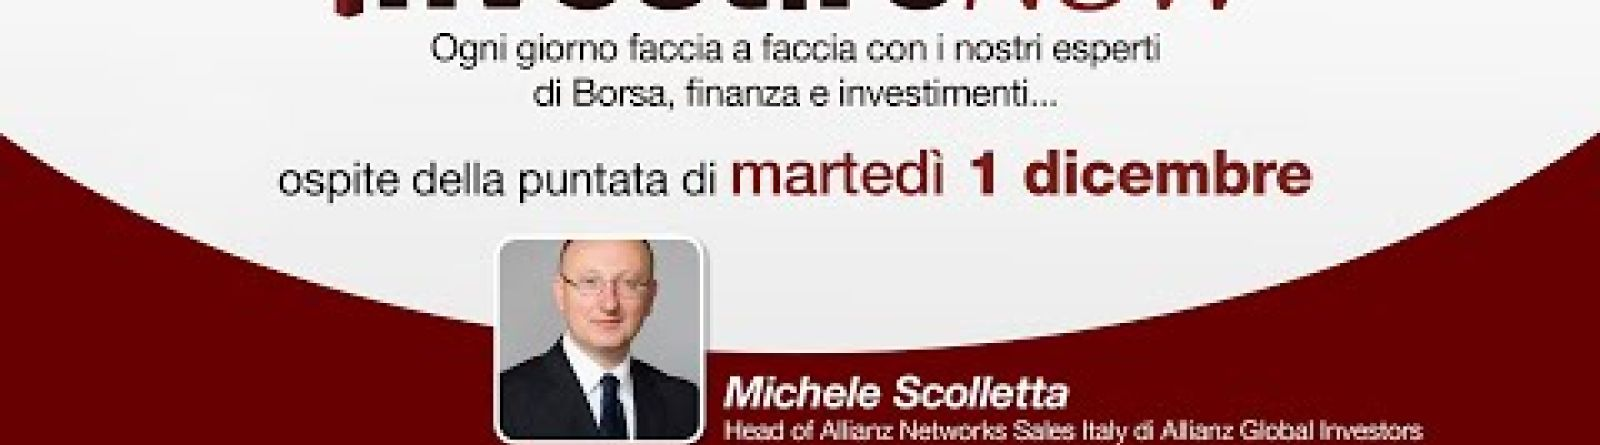 INVESTIRE NOW GUARDA LA DIRETTA - Sergio Luciano intervista Scolletta (Allianz GI)